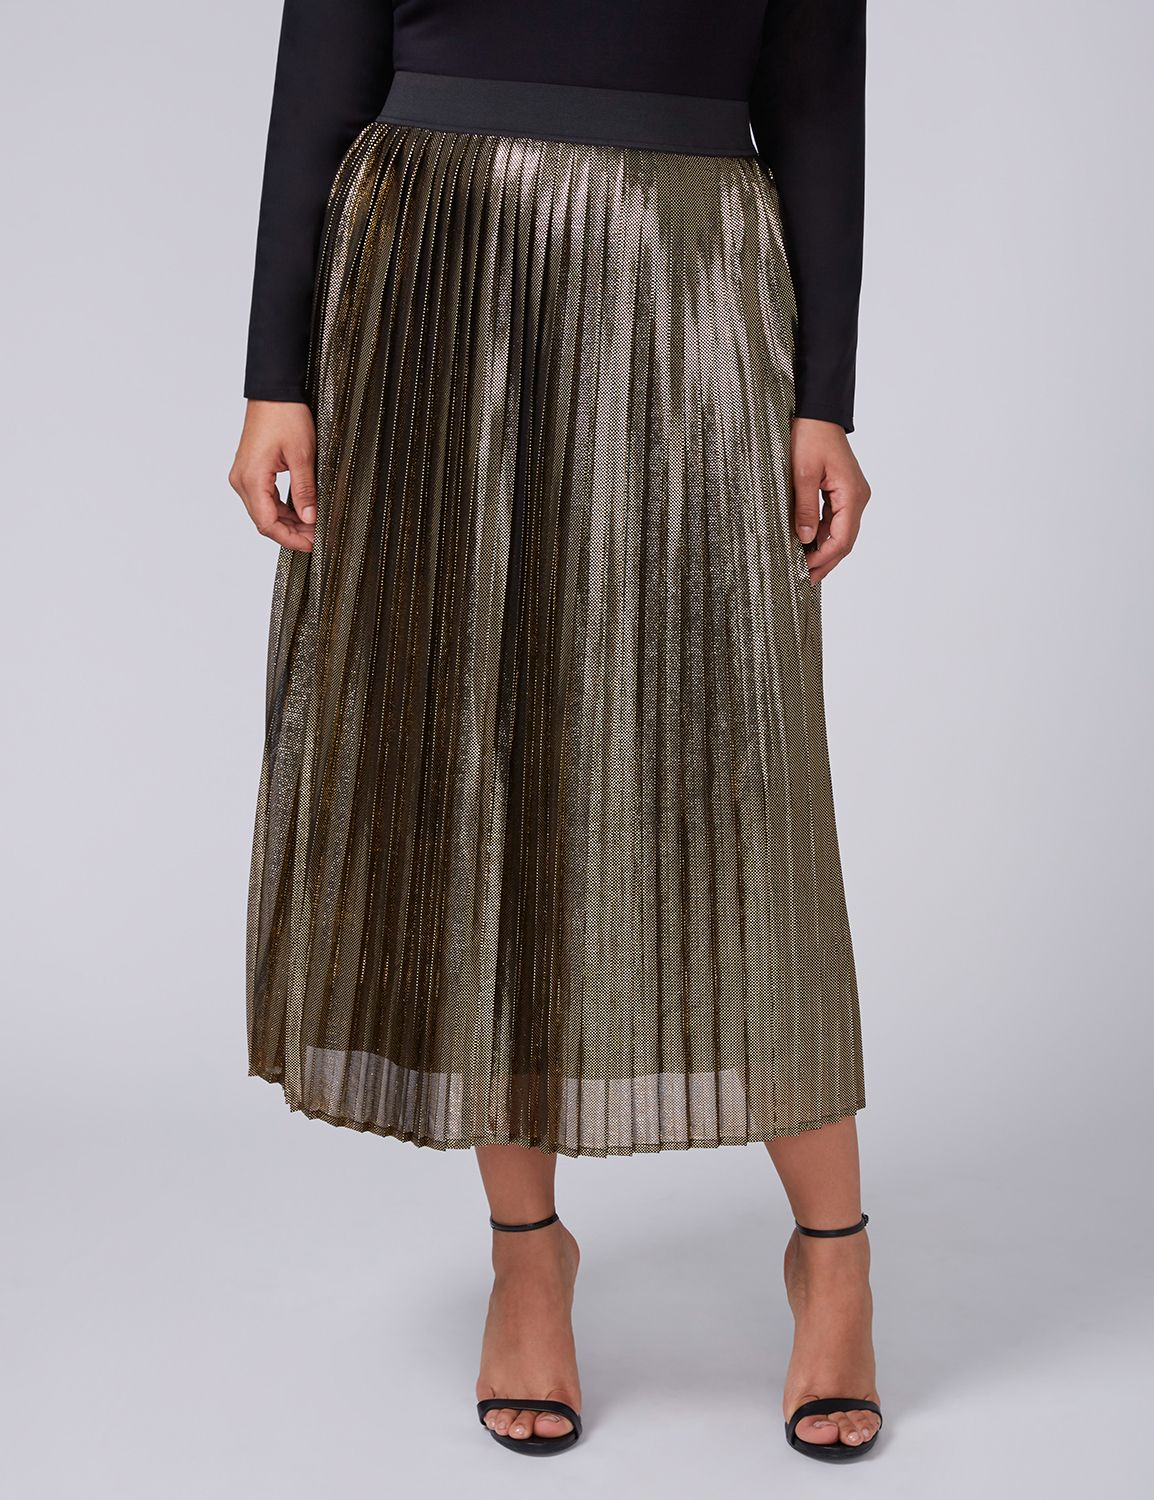 1920s Style Skirts Lane Bryant Womens Fast Lane Metallic Pleated Midi Skirt 2628 Multi Gold $89.95 AT vintagedancer.com